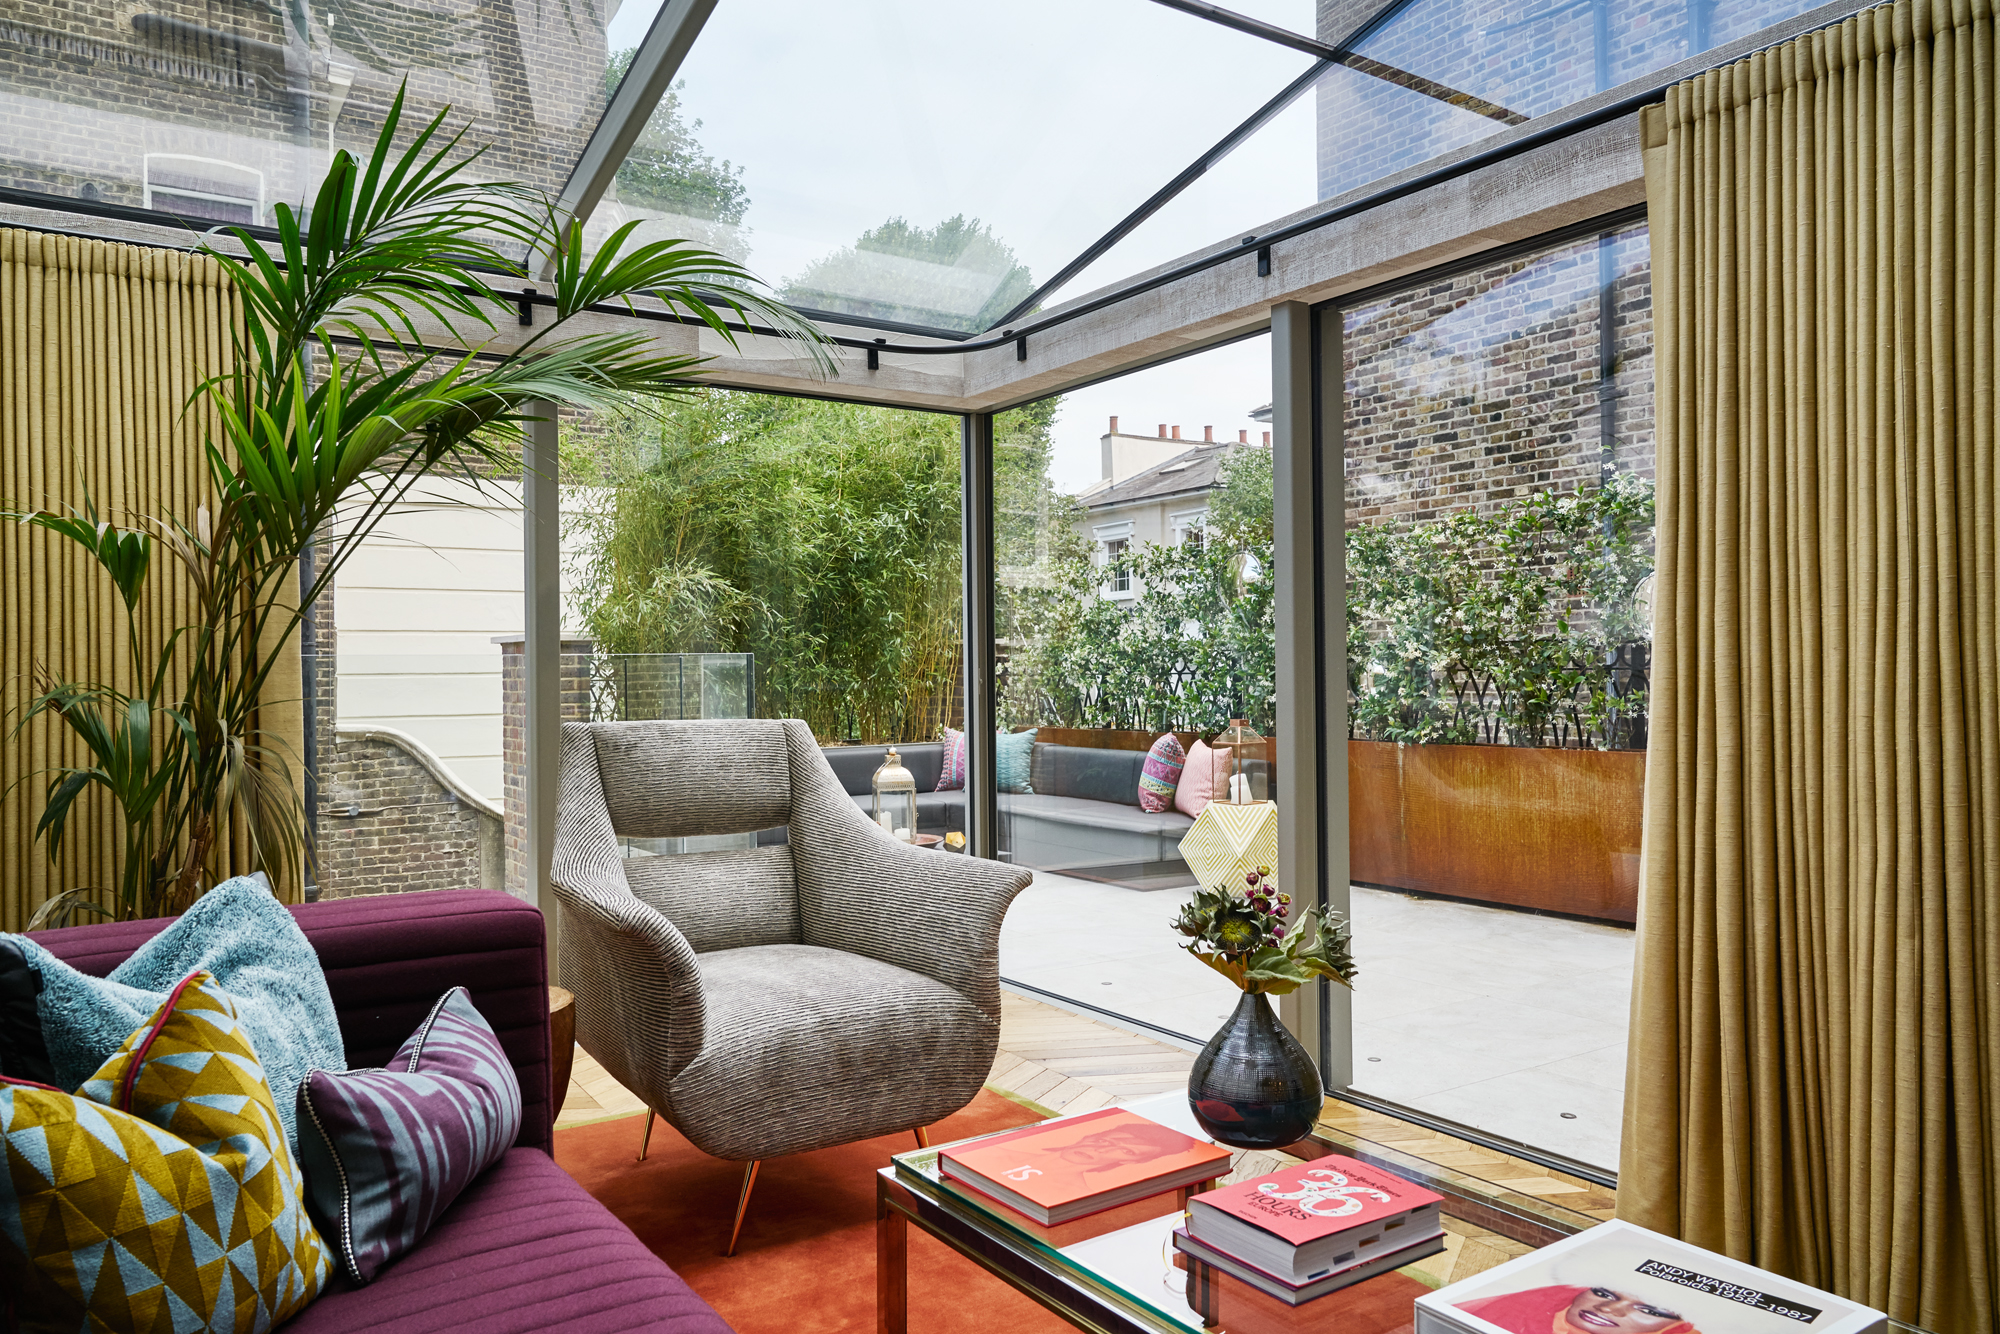 Family Room Extension with a hint of 70's Glam by Studio L, London Ltd